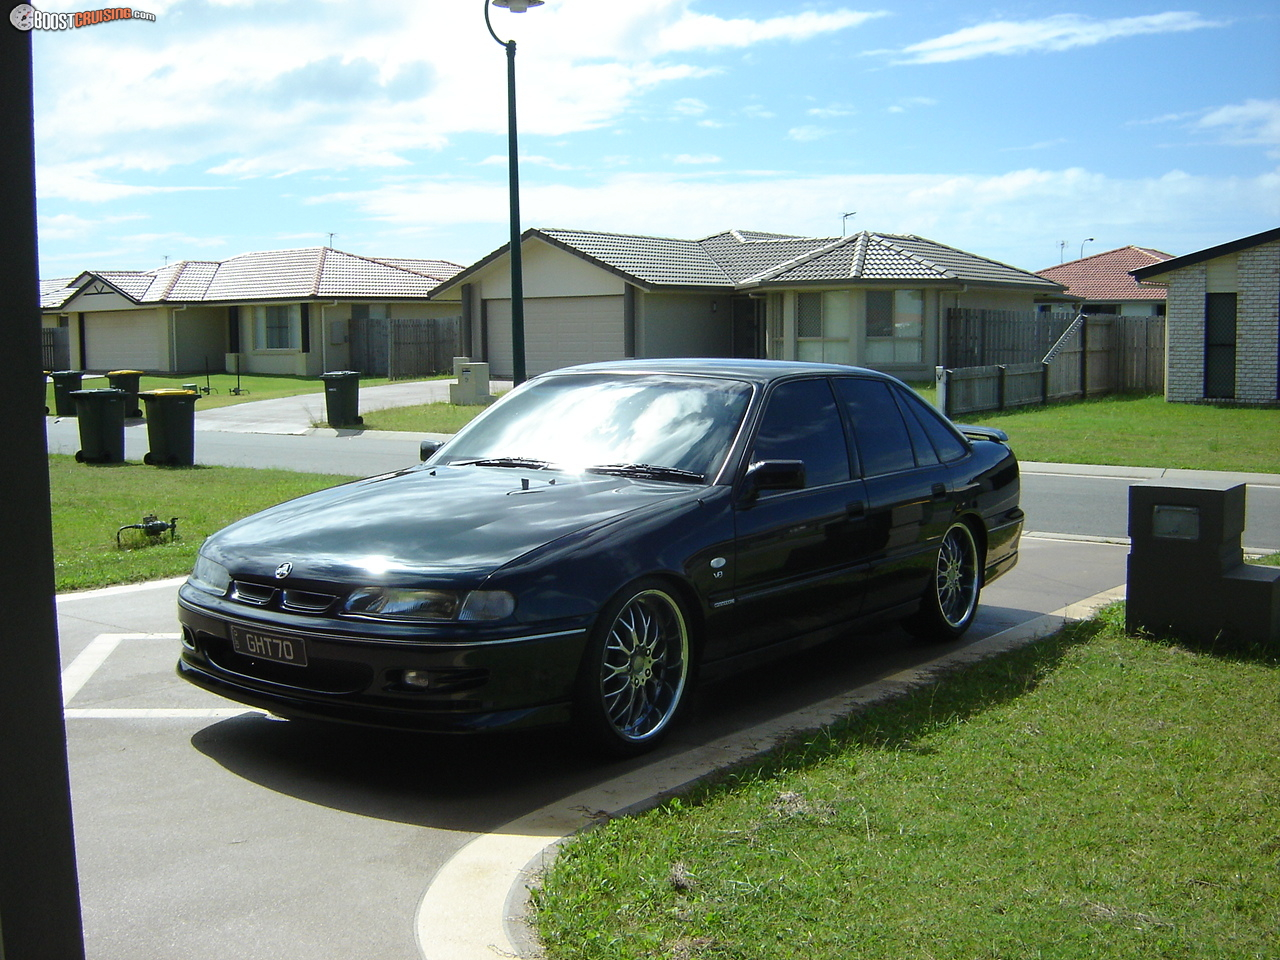 holden commodore 1996 images #15